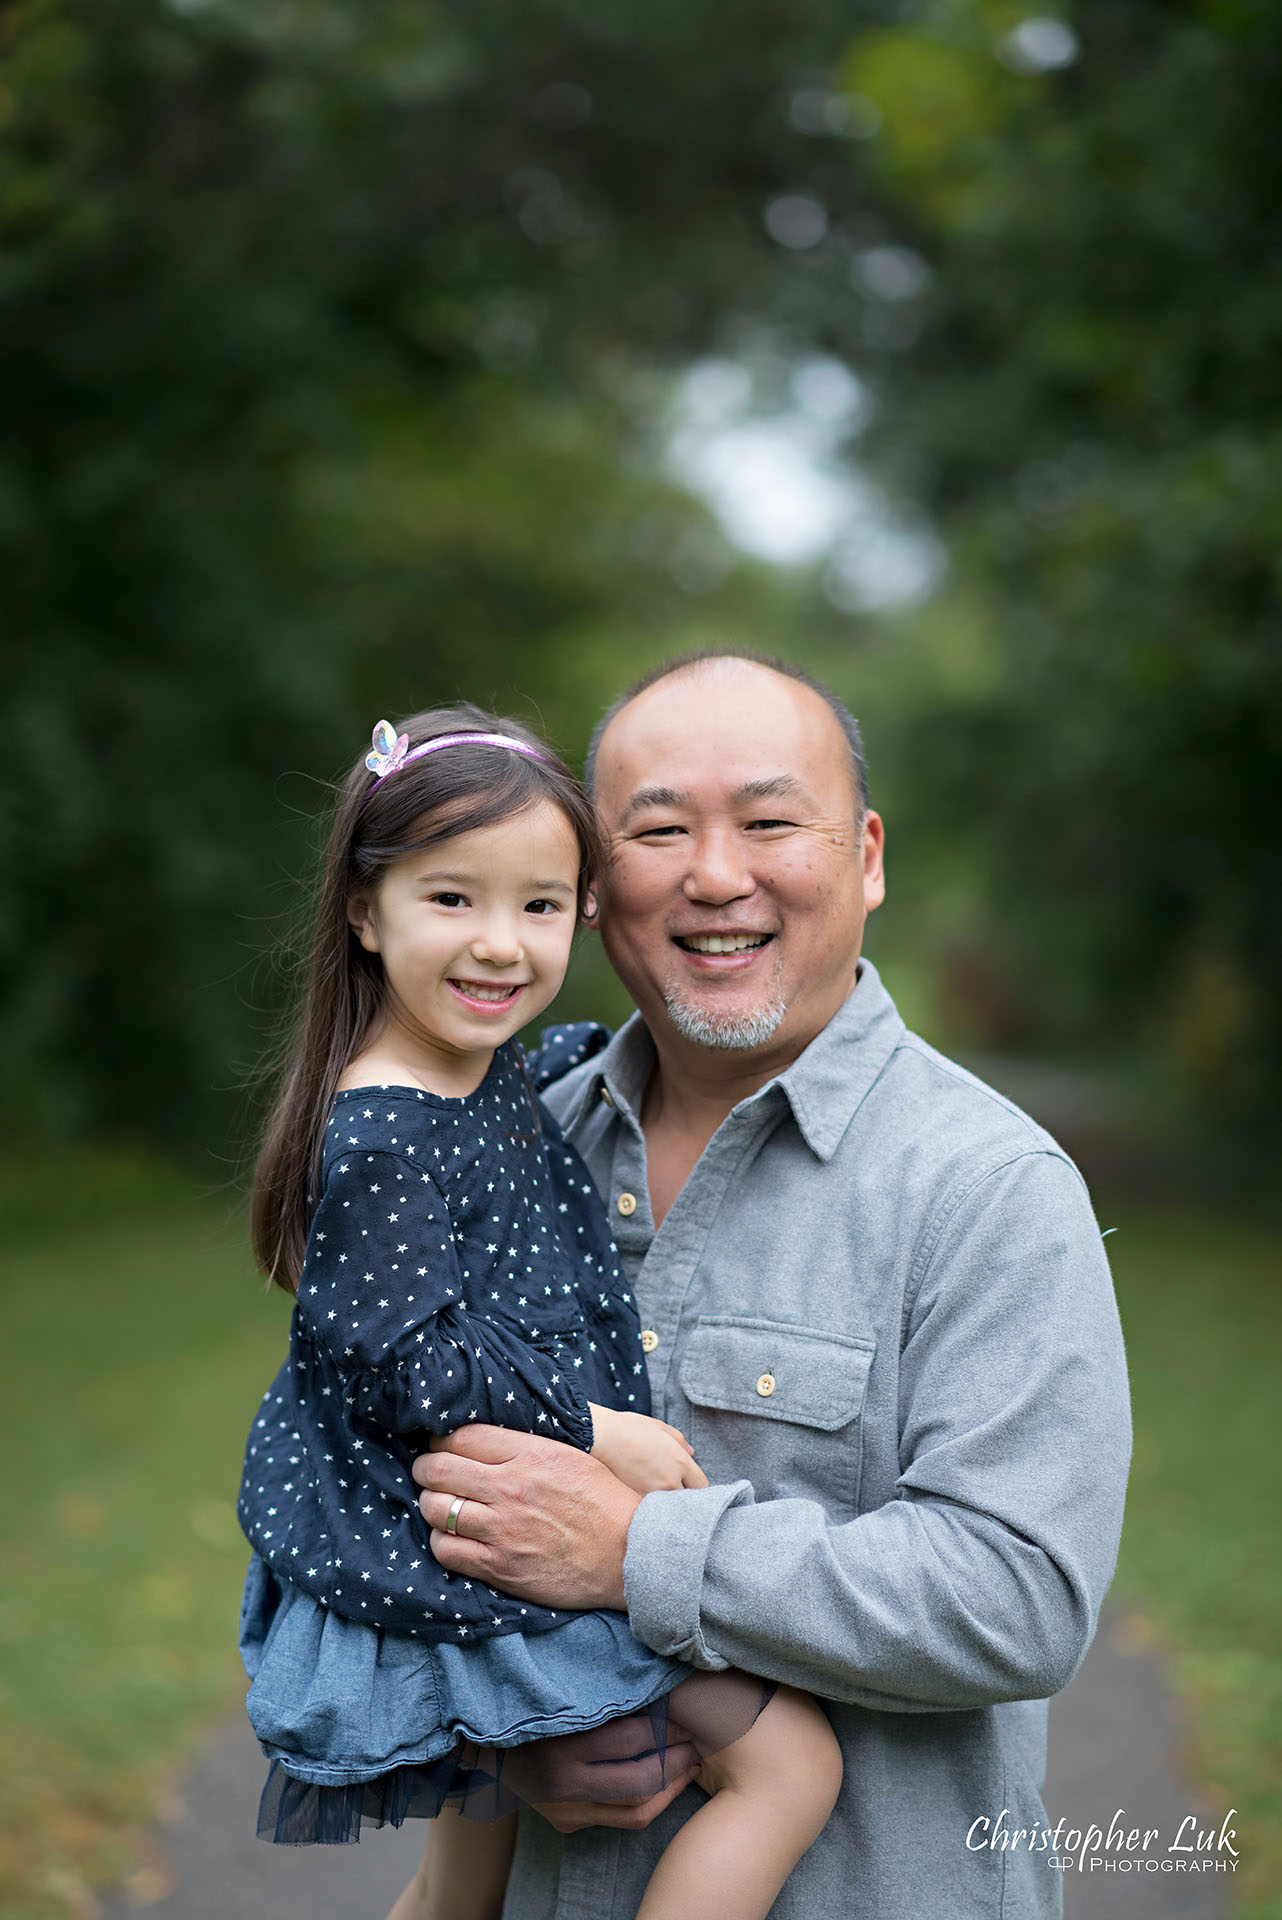 Christopher Luk Family Photographer Toronto Markham Candid Natural Photojournalistic Father Dad Fatherhood Daughter Hug Carry Smile